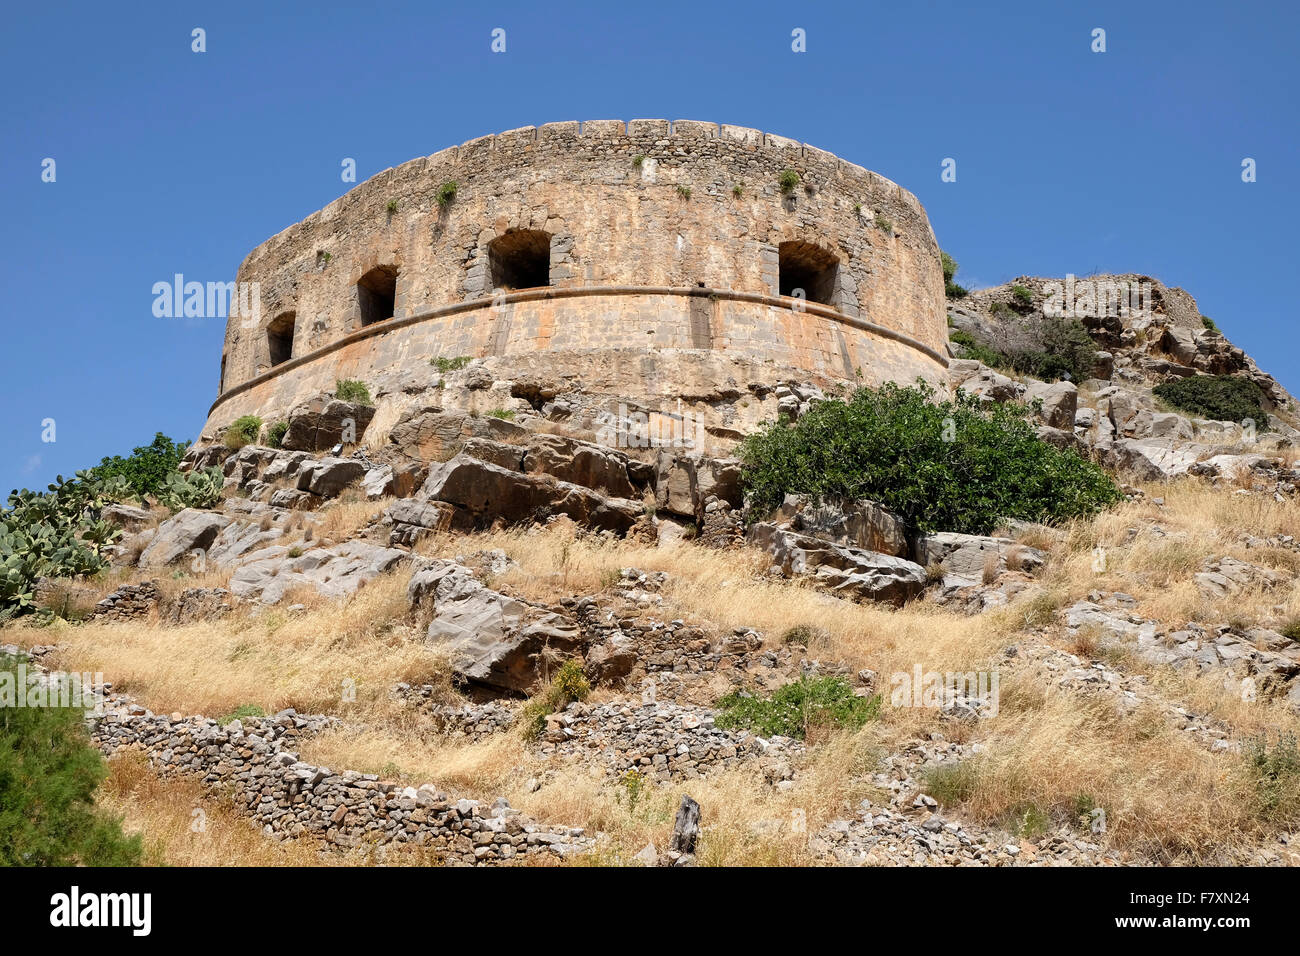 The Venetian Bastion of Mezzaluna Moceniga or Barbariga on the island of Spinalonga, Crete. - Stock Image